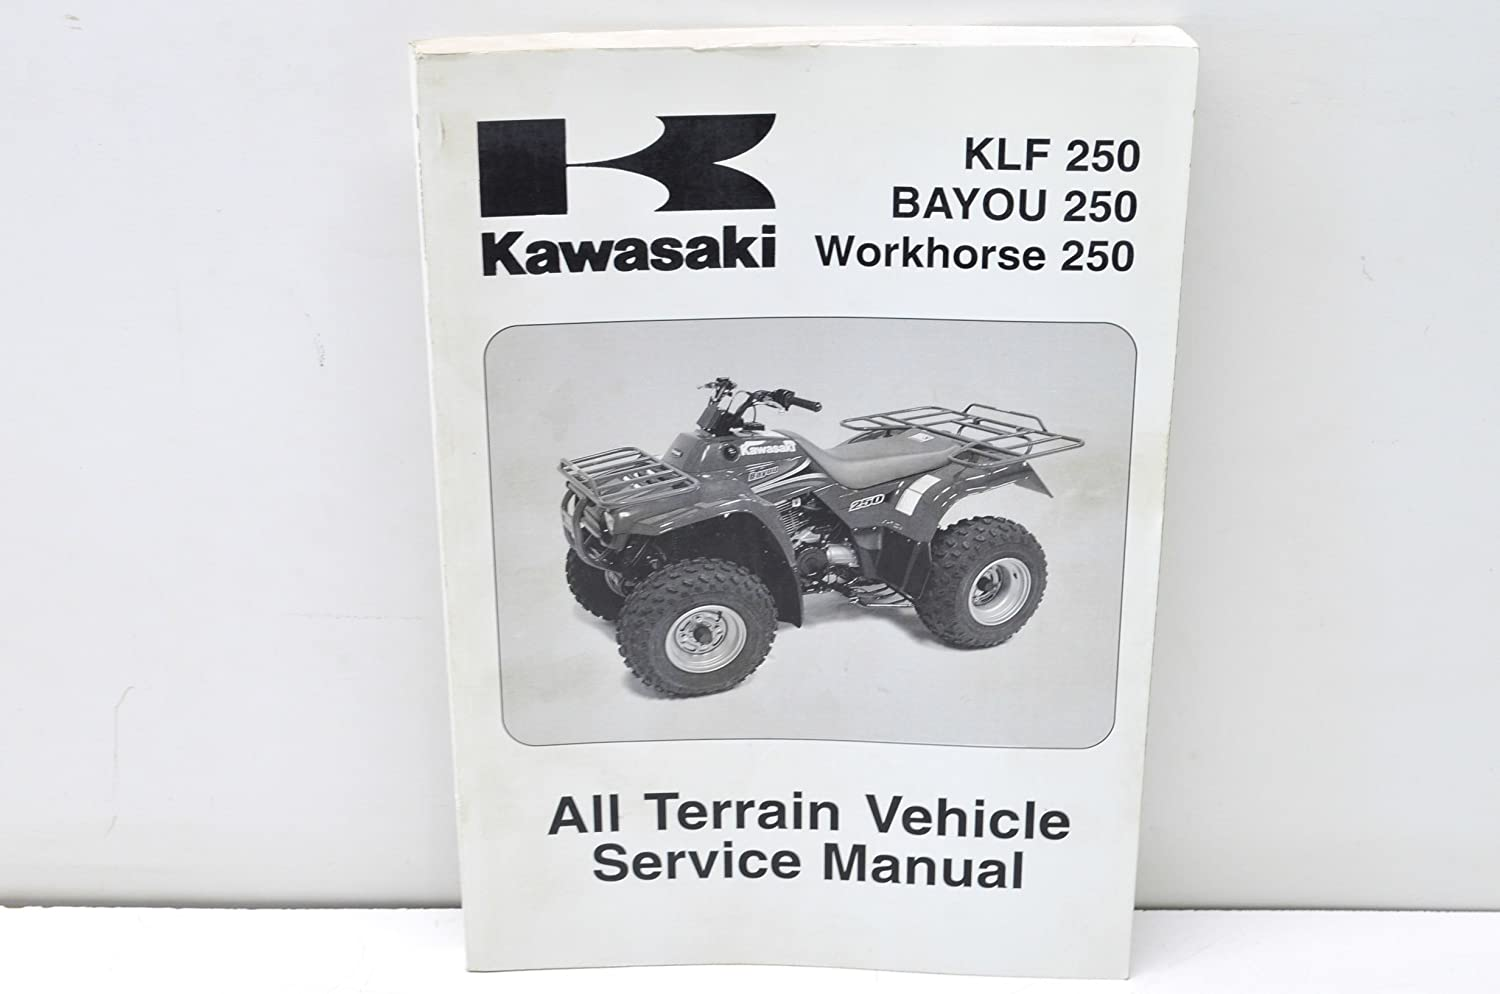 Amazon.com: Kawasaki 99924-1284-03 2003-2005 KLF 250, BAYOU 250, Workhorse  250 Service Manual QTY 1: Automotive